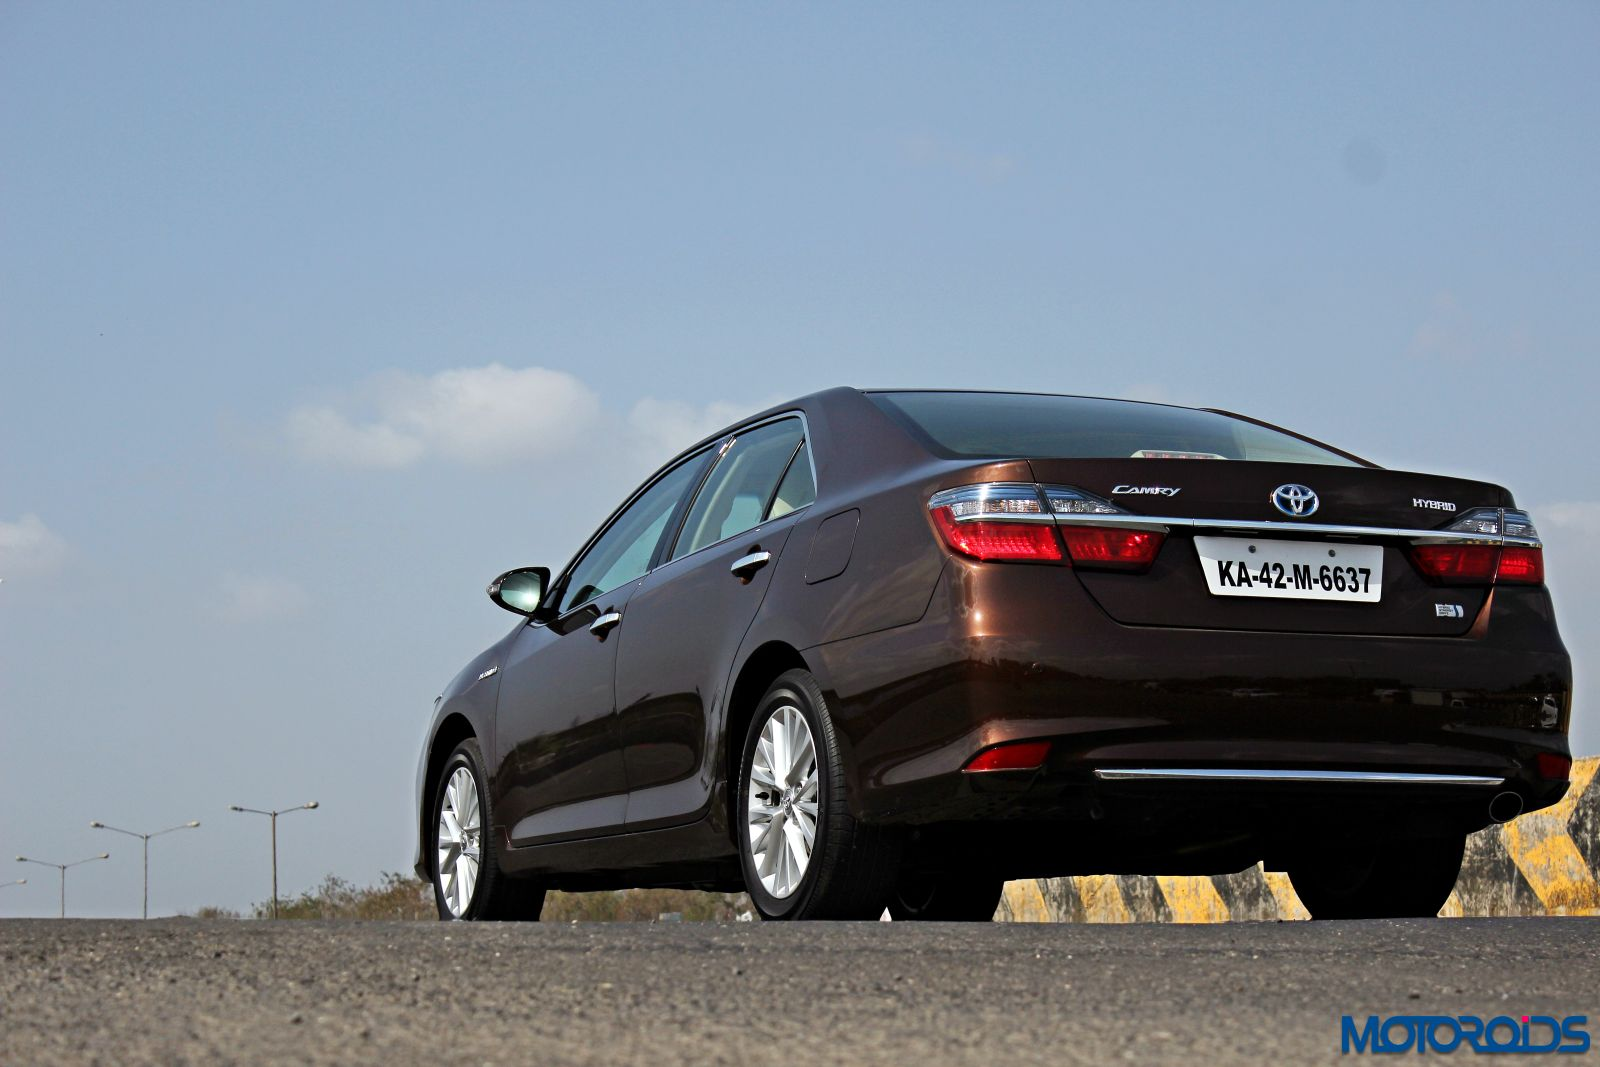 Toyota India Reduces The Price For The Camry Hybrid By Inr